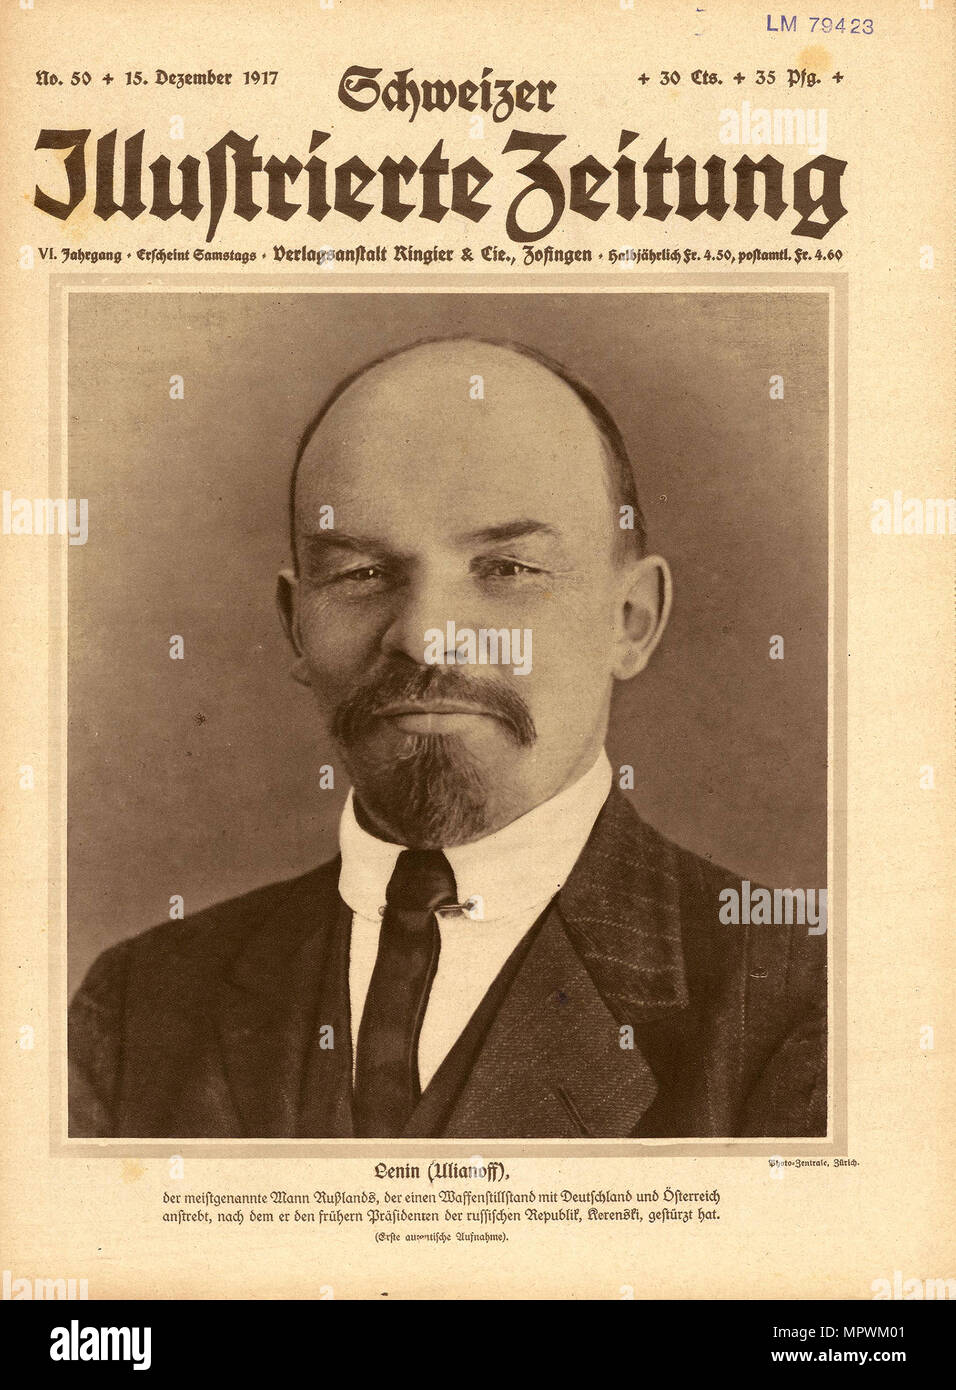 The Schweizer Illustrierte Zeitung with Lenin on the title page of 15 December 1917, 1917. - Stock Image